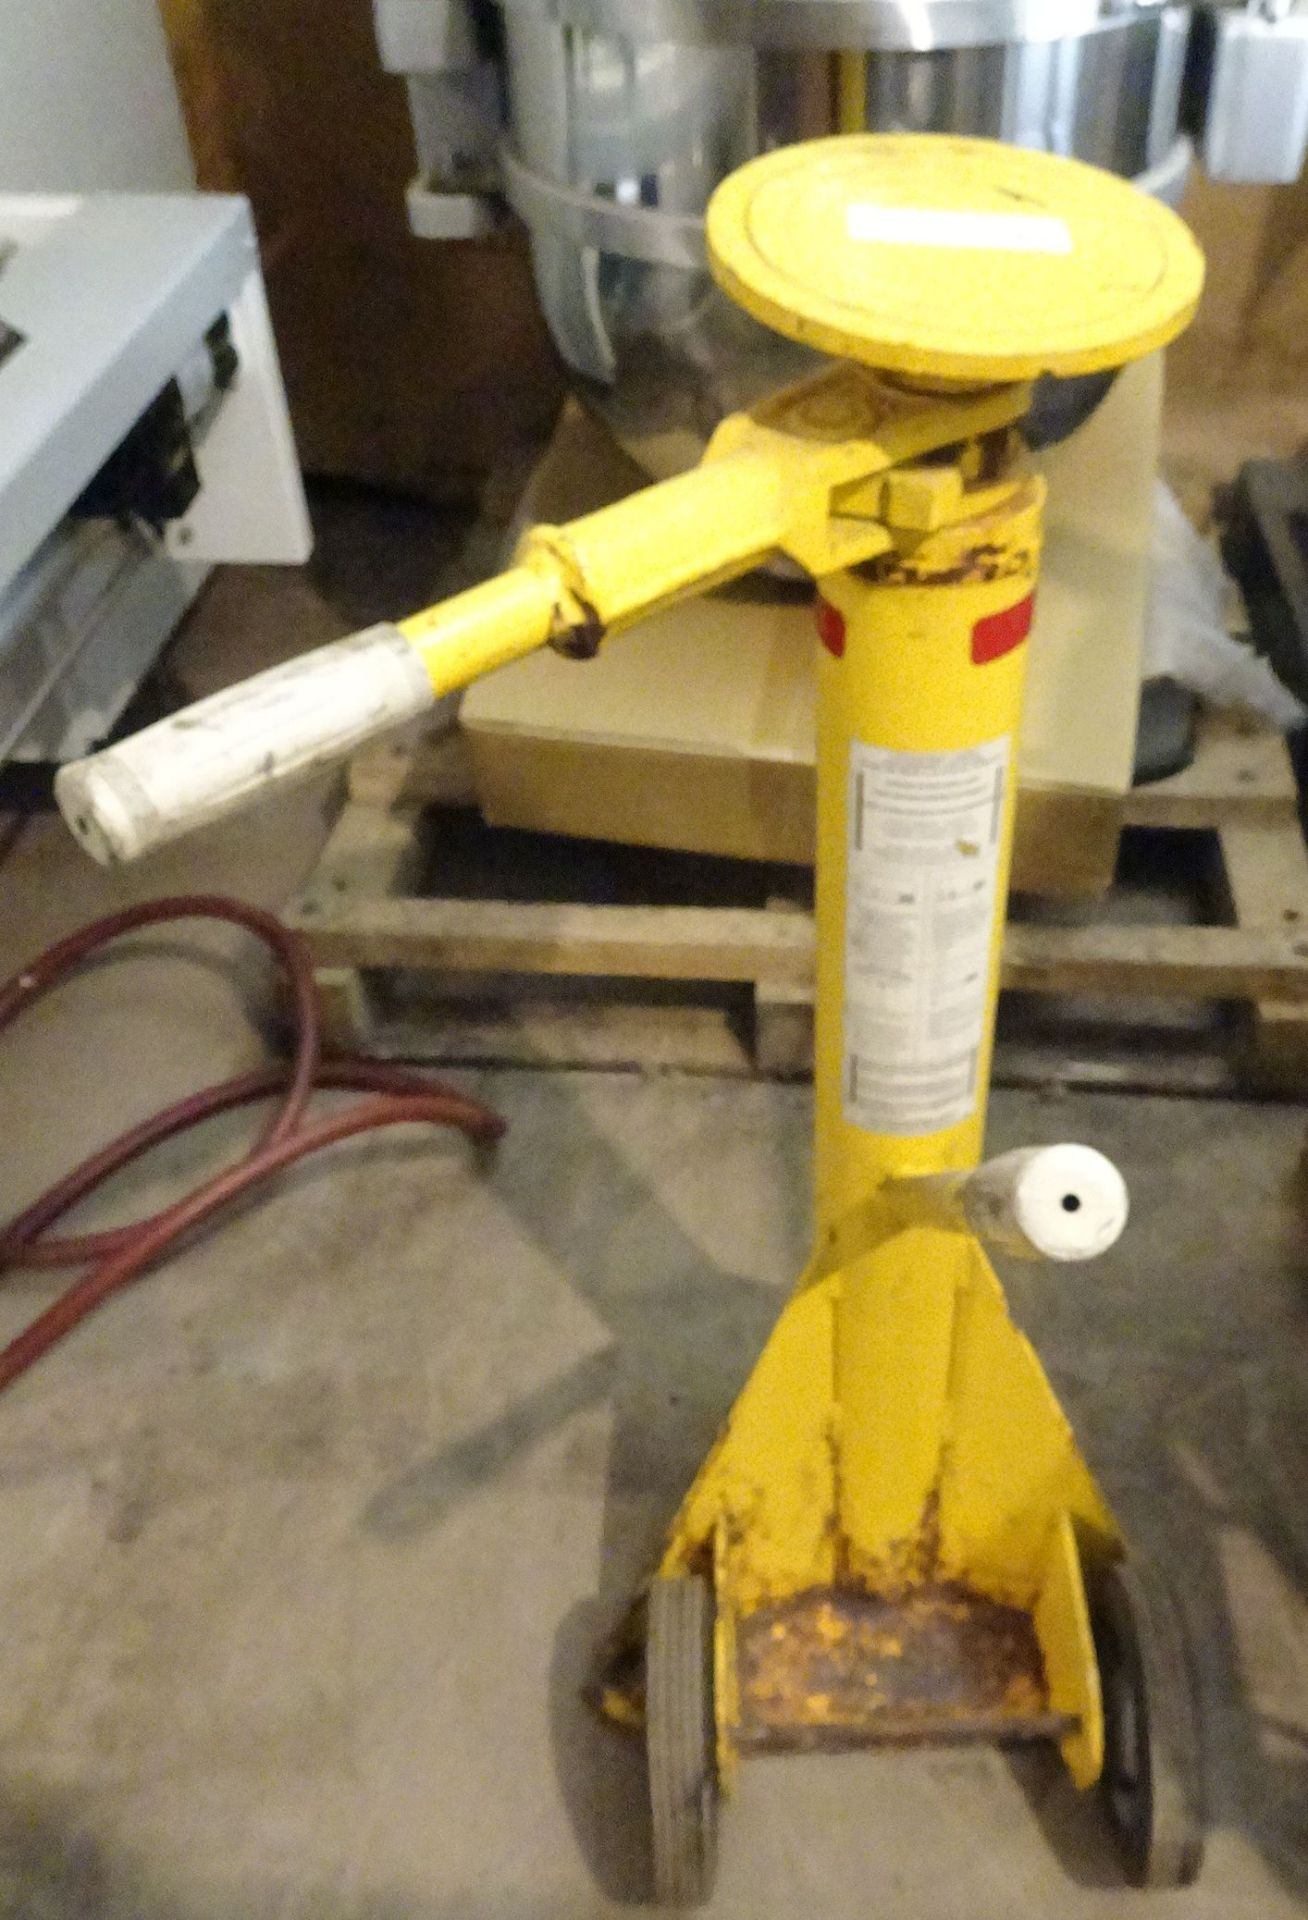 Lot 2 - T&S Equipment Trailer Stabilizing Jack. Static Capacity 80,000 lbs.